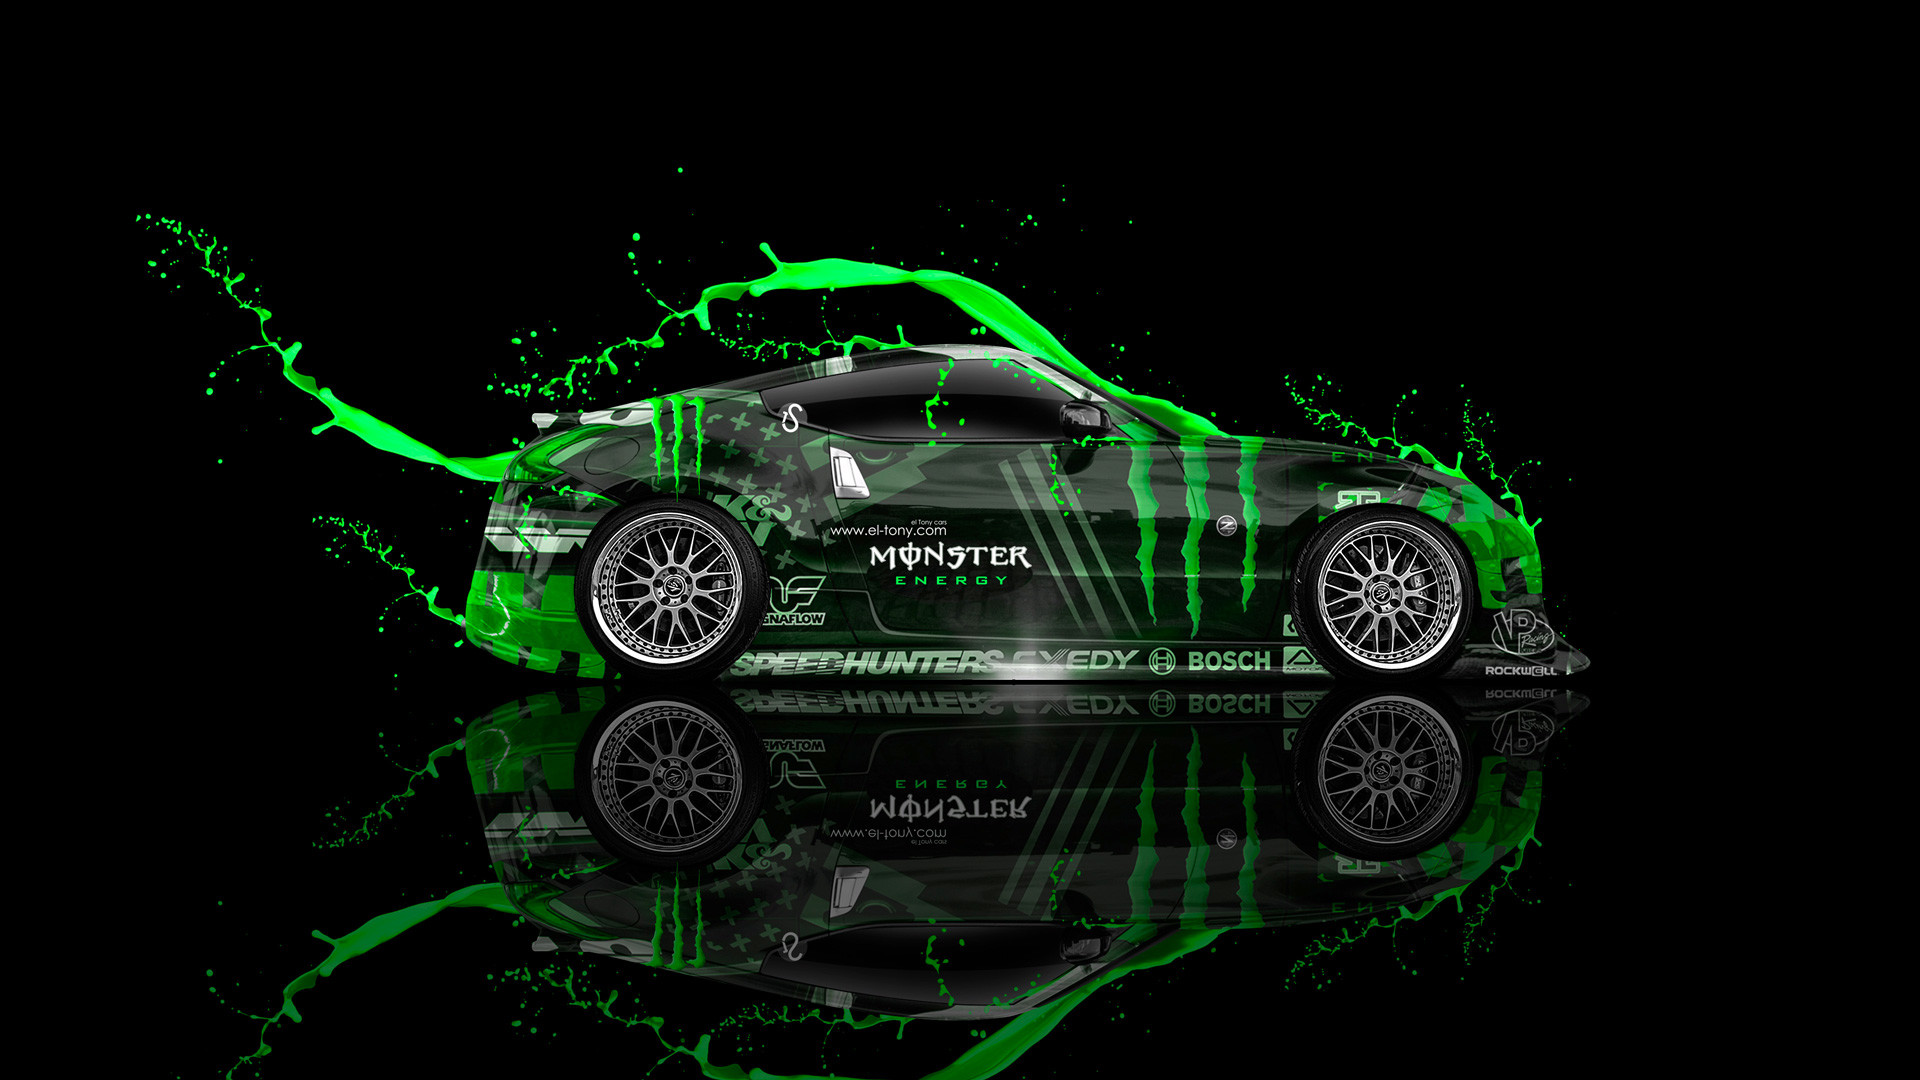 F1 Car Monster Energy Wallpaper Hd: Monster Energy Wallpaper 2018 HD (79+ Images